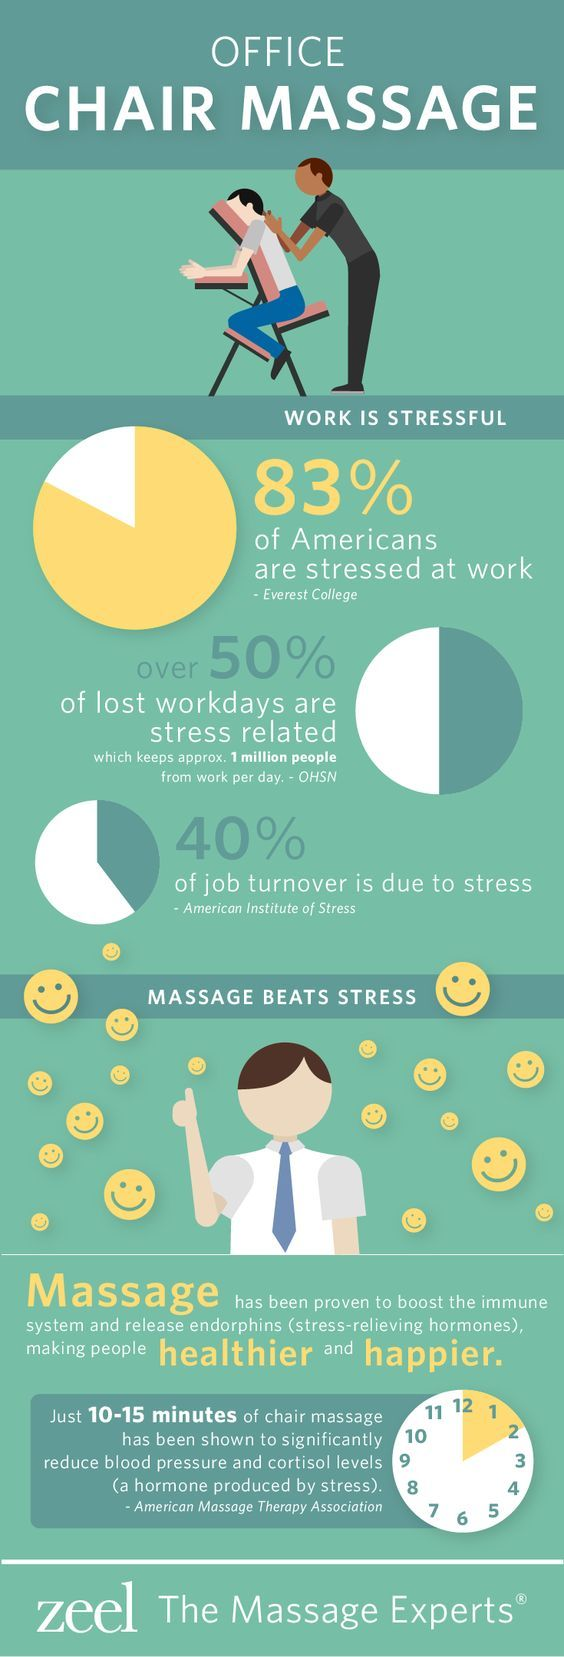 We know two things: workplace stress can take a toll on your health and massage relieves stress.  The obvious solution:  bringing the restorative power of onsite chair massage to the workplace.  Massage has been proven to boost the immune system and release endorphins (stress-relieving hormones) – making employees healthier and happier.: